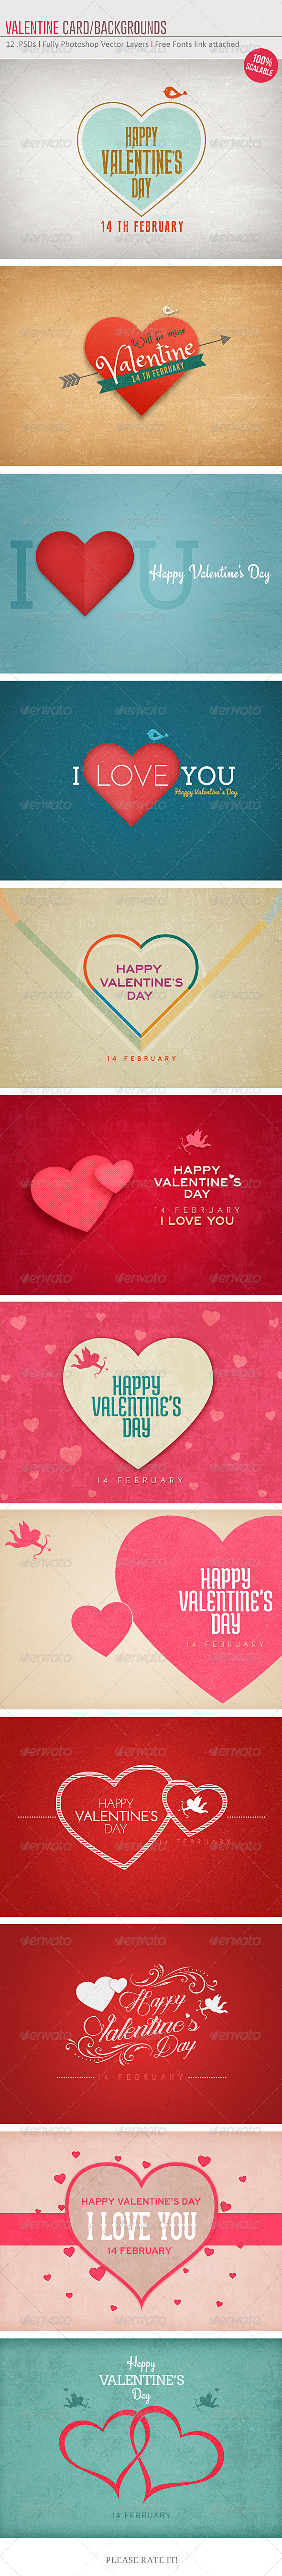 Valentine Card/Backgrounds - Backgrounds Graphics